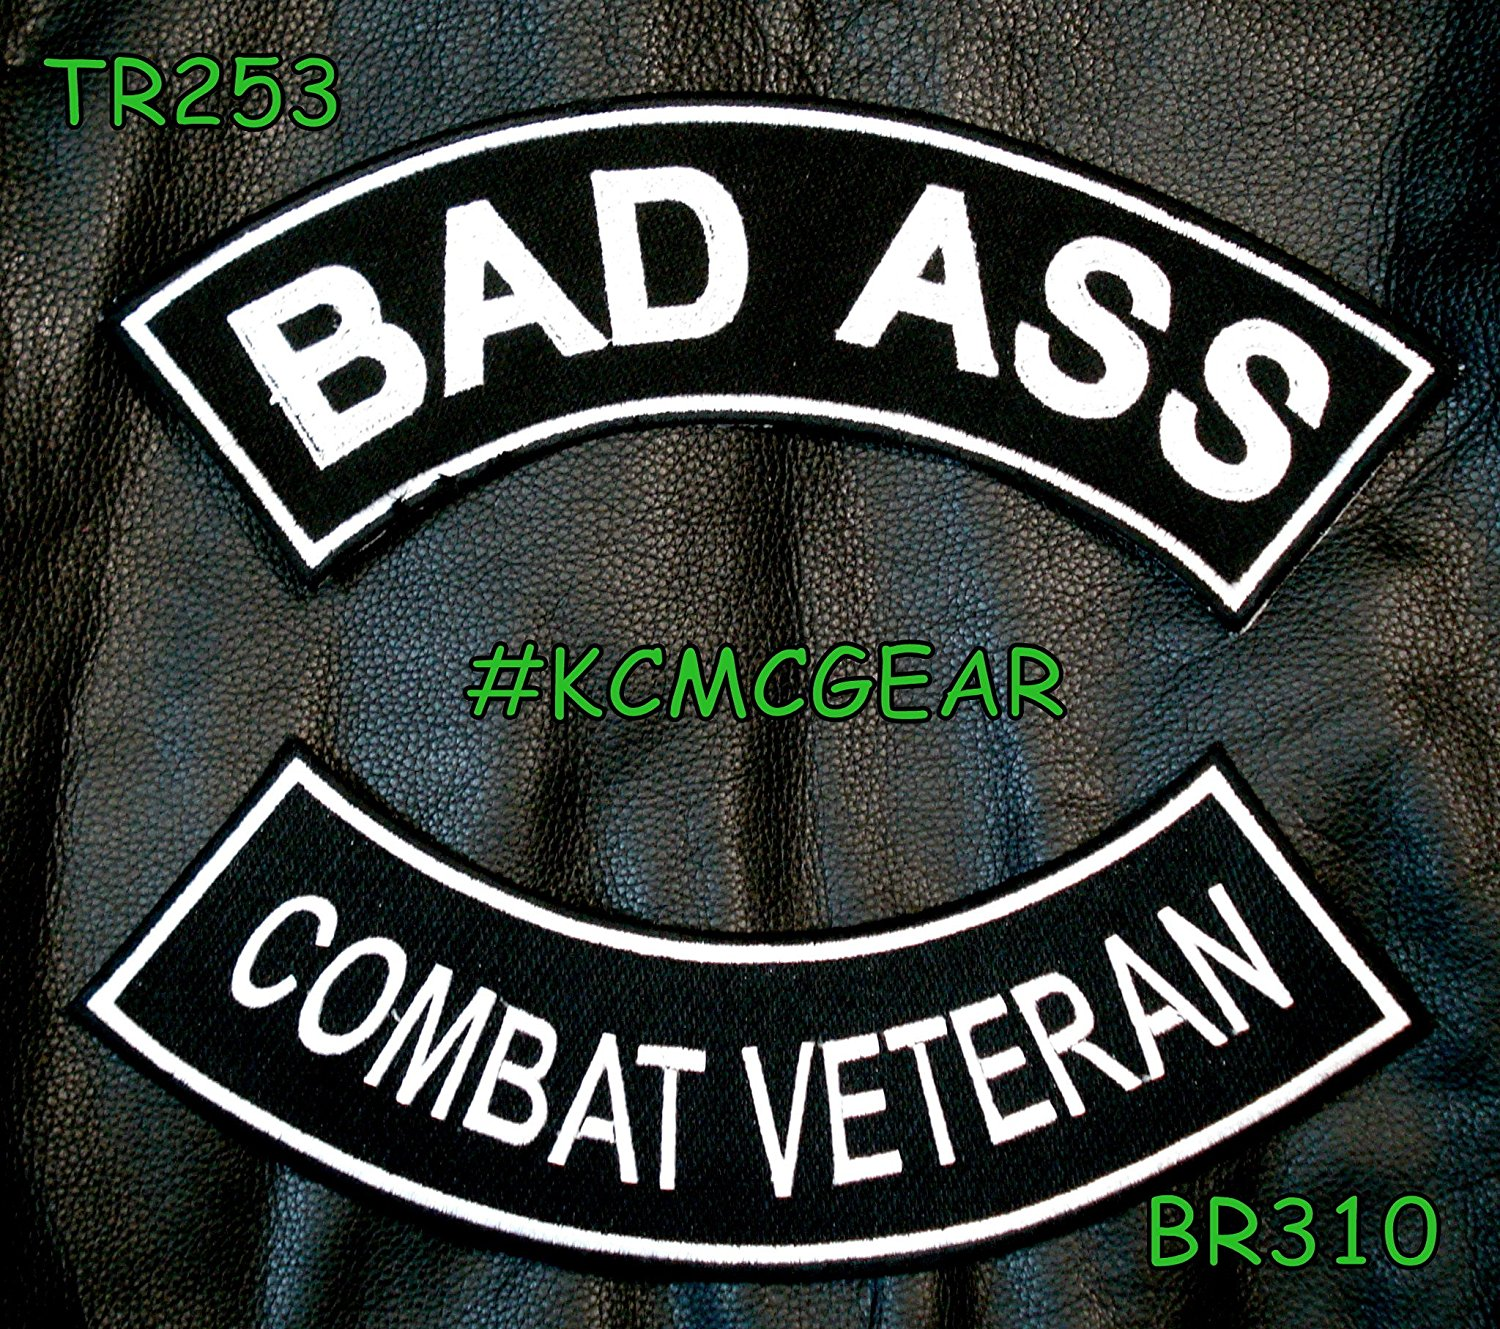 Military Biker Patch Set Bad Ass Combat Veteran Embroidered Patches Sew on Patches for Jackets